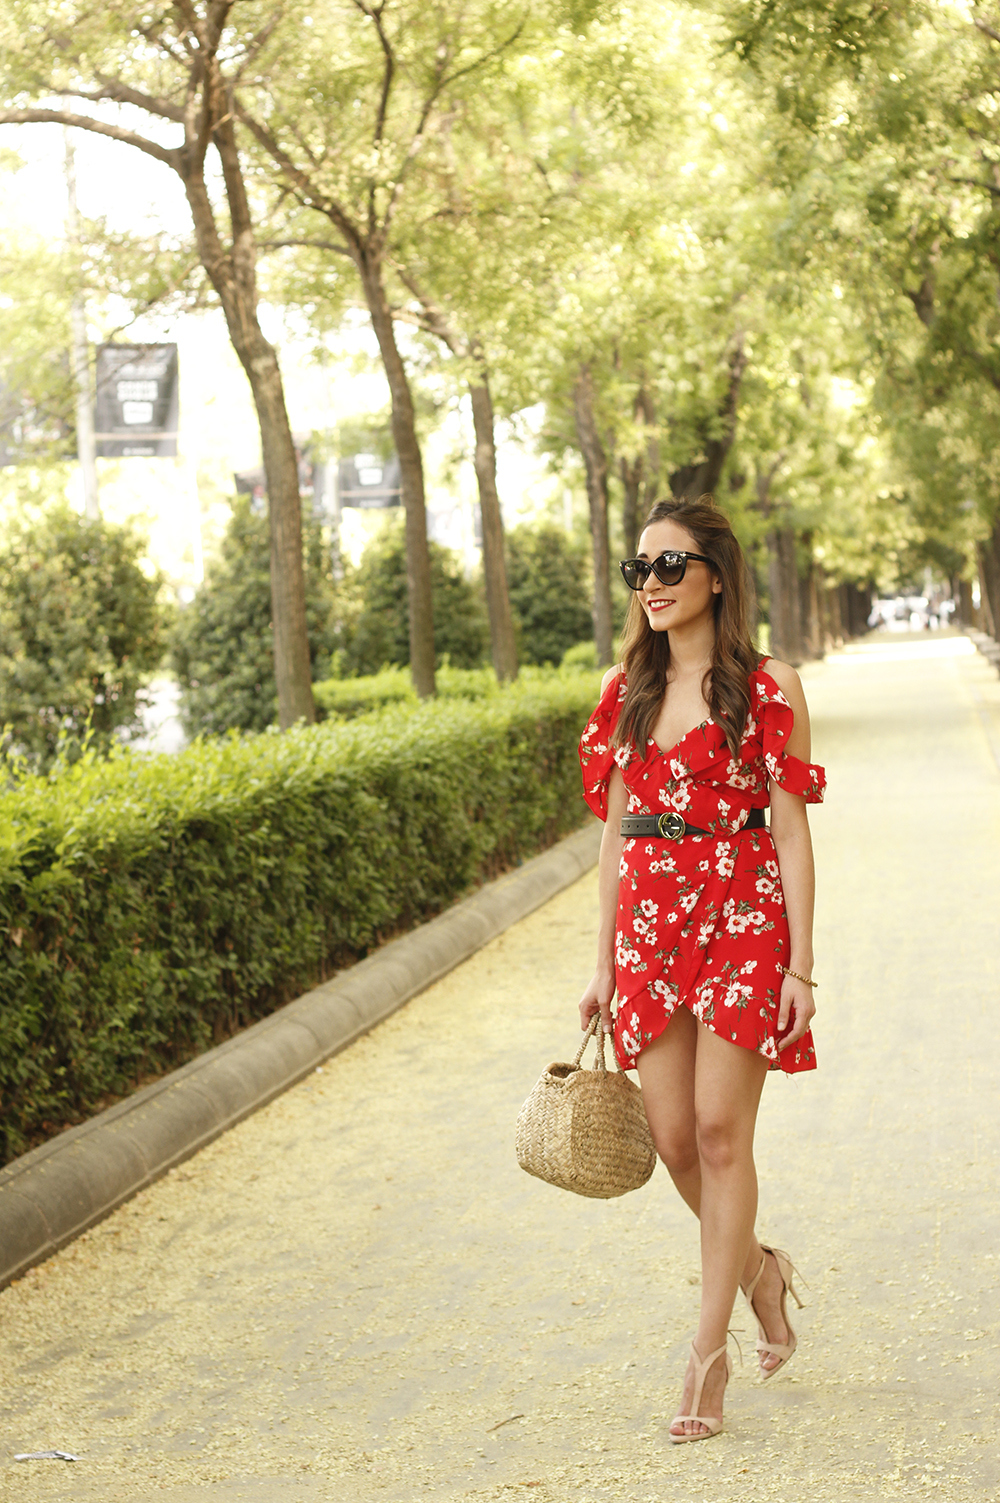 Red flower dress nude heels gucci belt rafia bag style fashion summer13